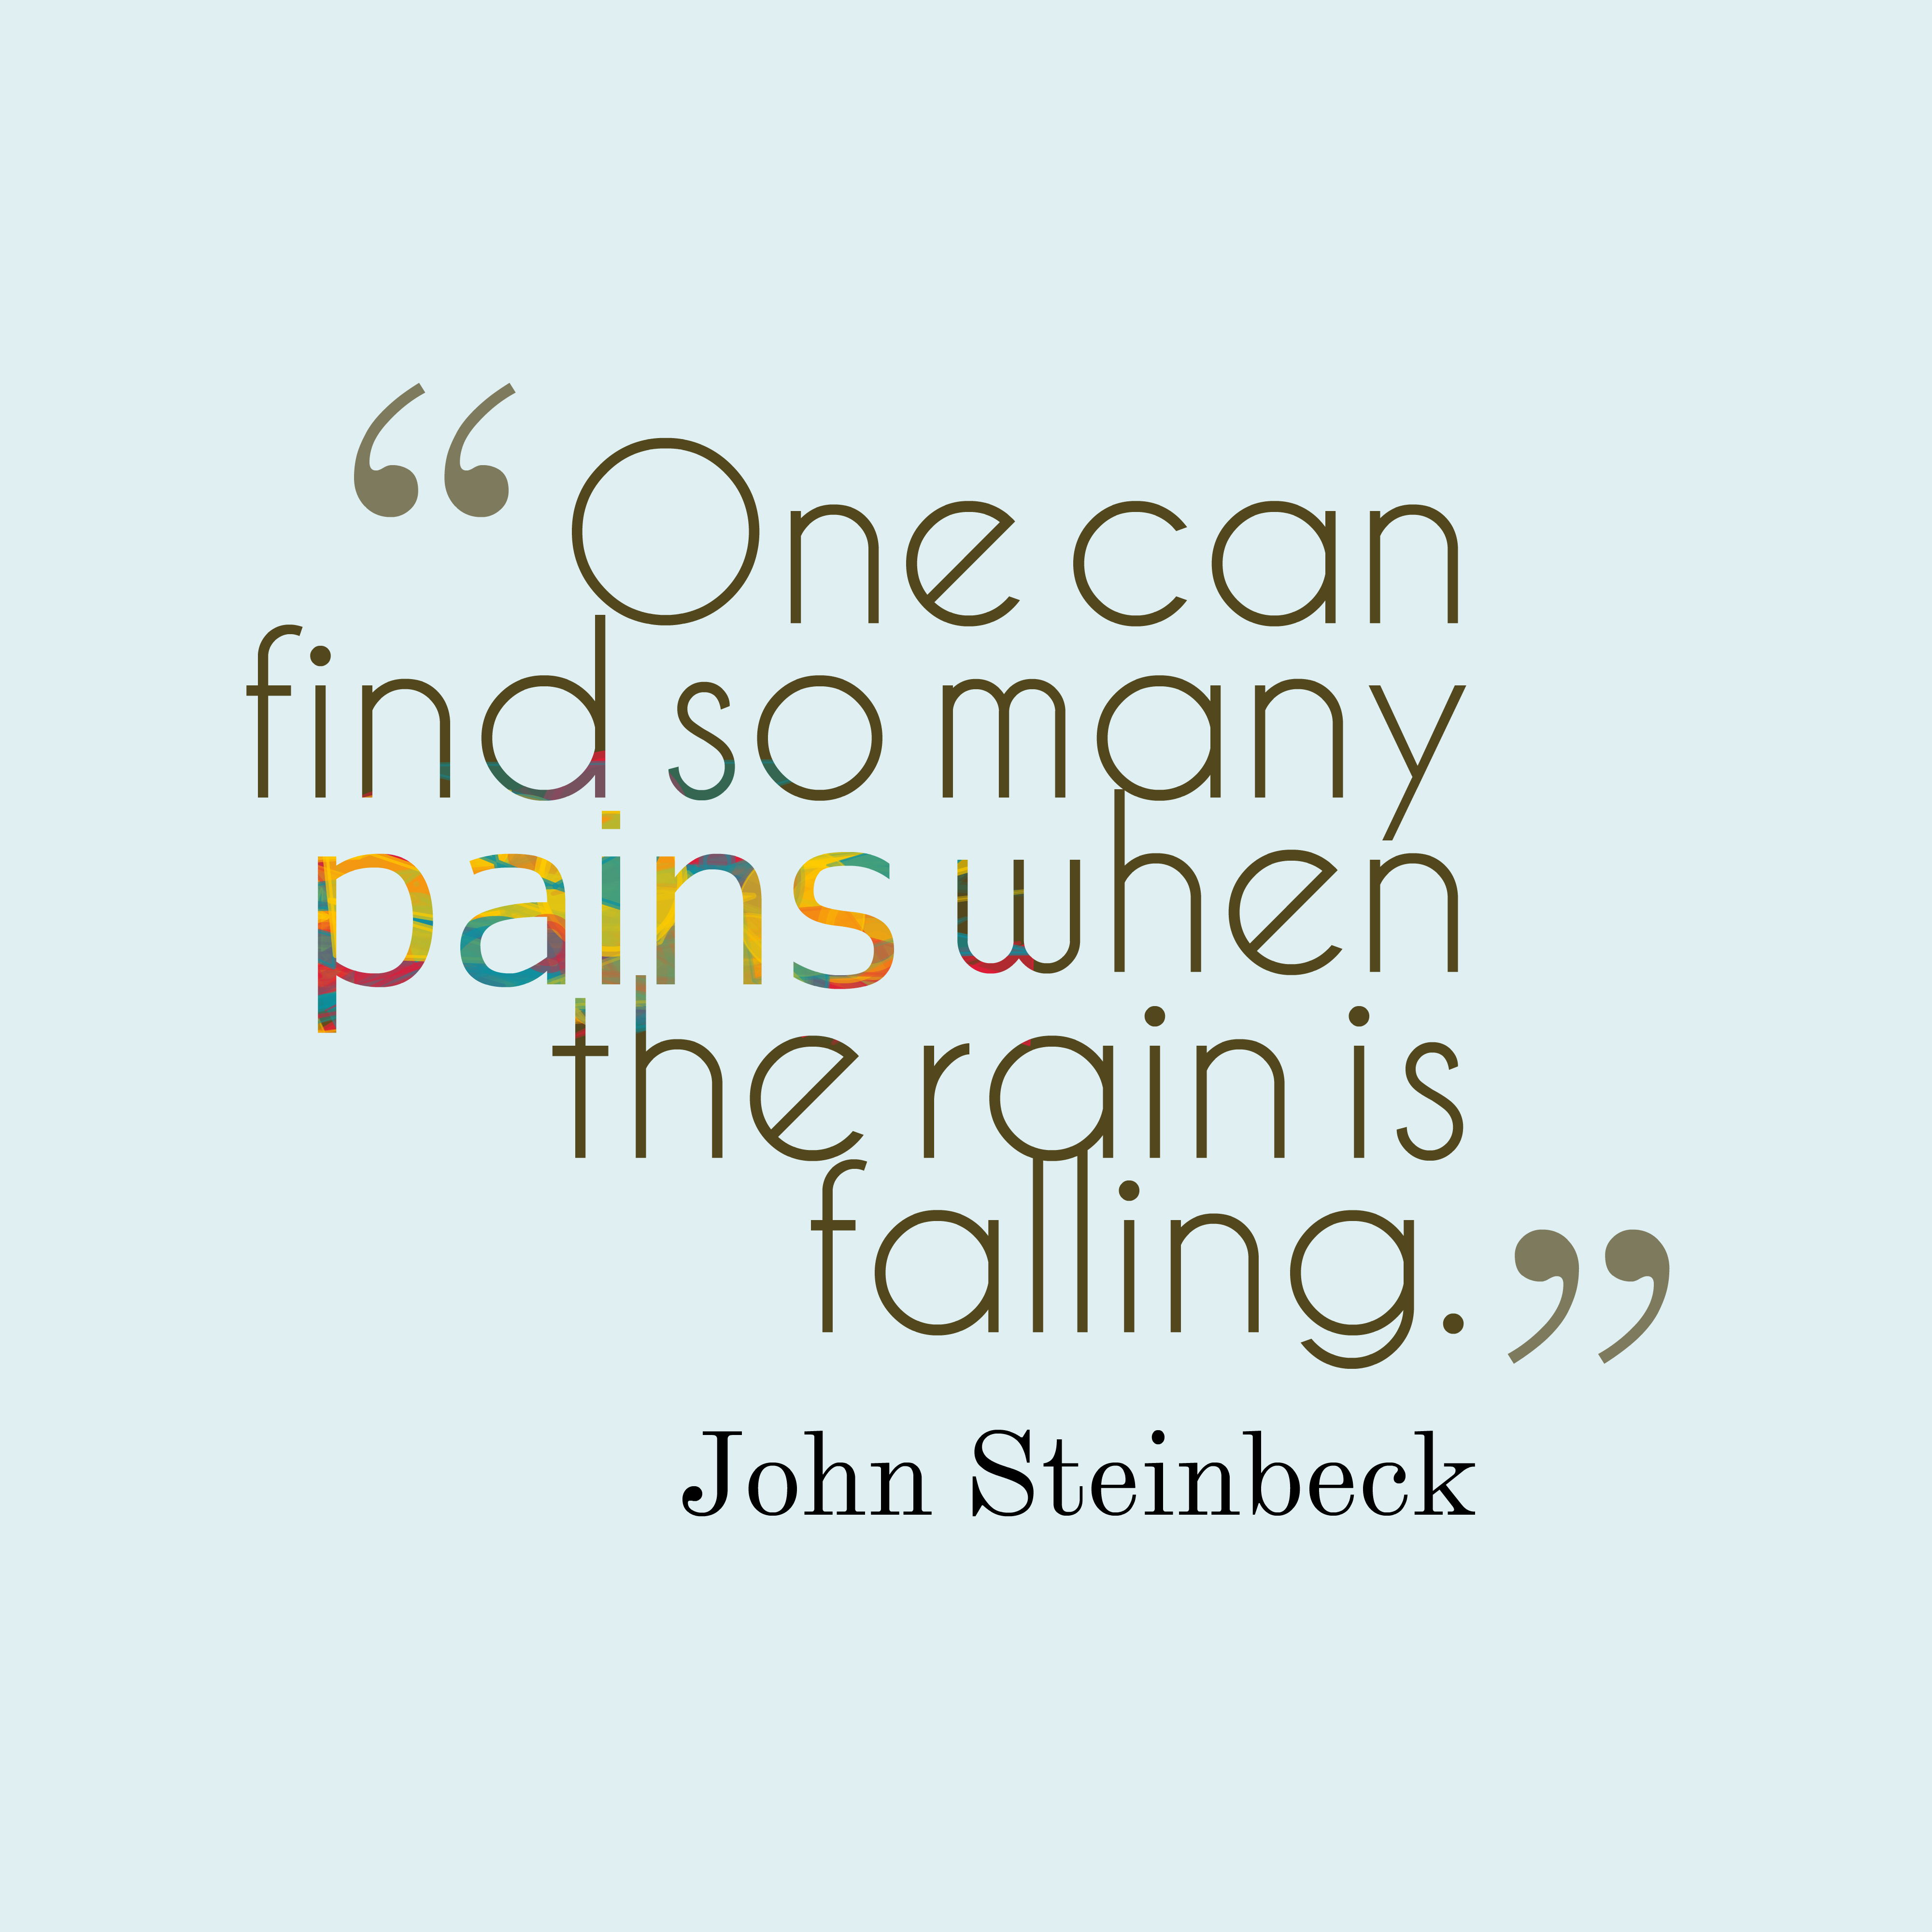 Quotes image of One can find so many pains when the rain is falling.